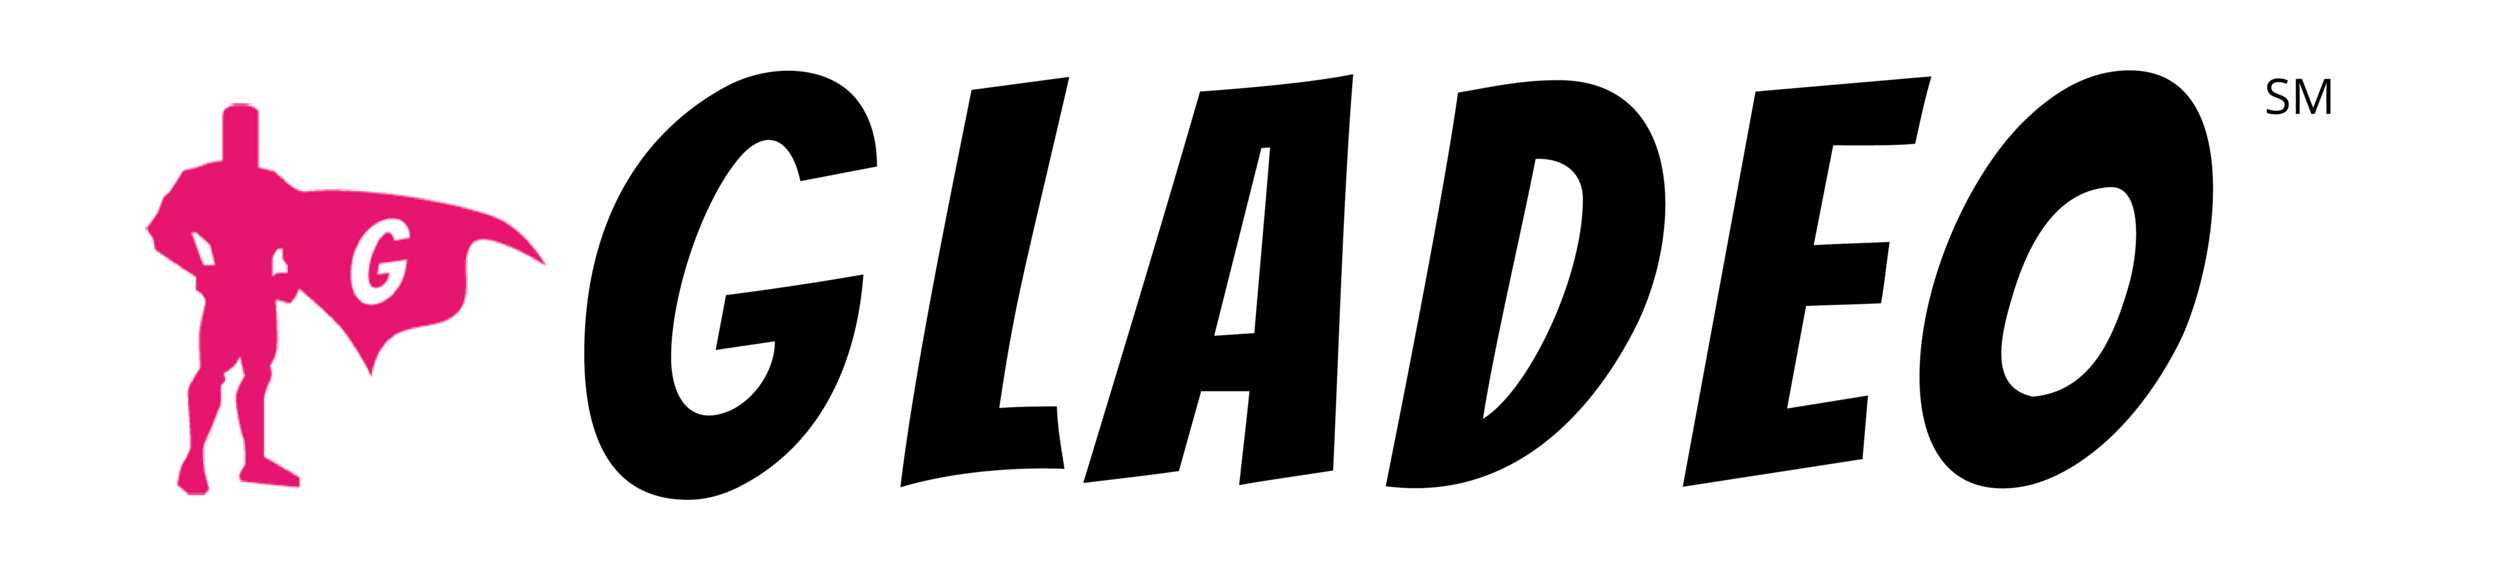 Gladeo Favicon Logo Large.png